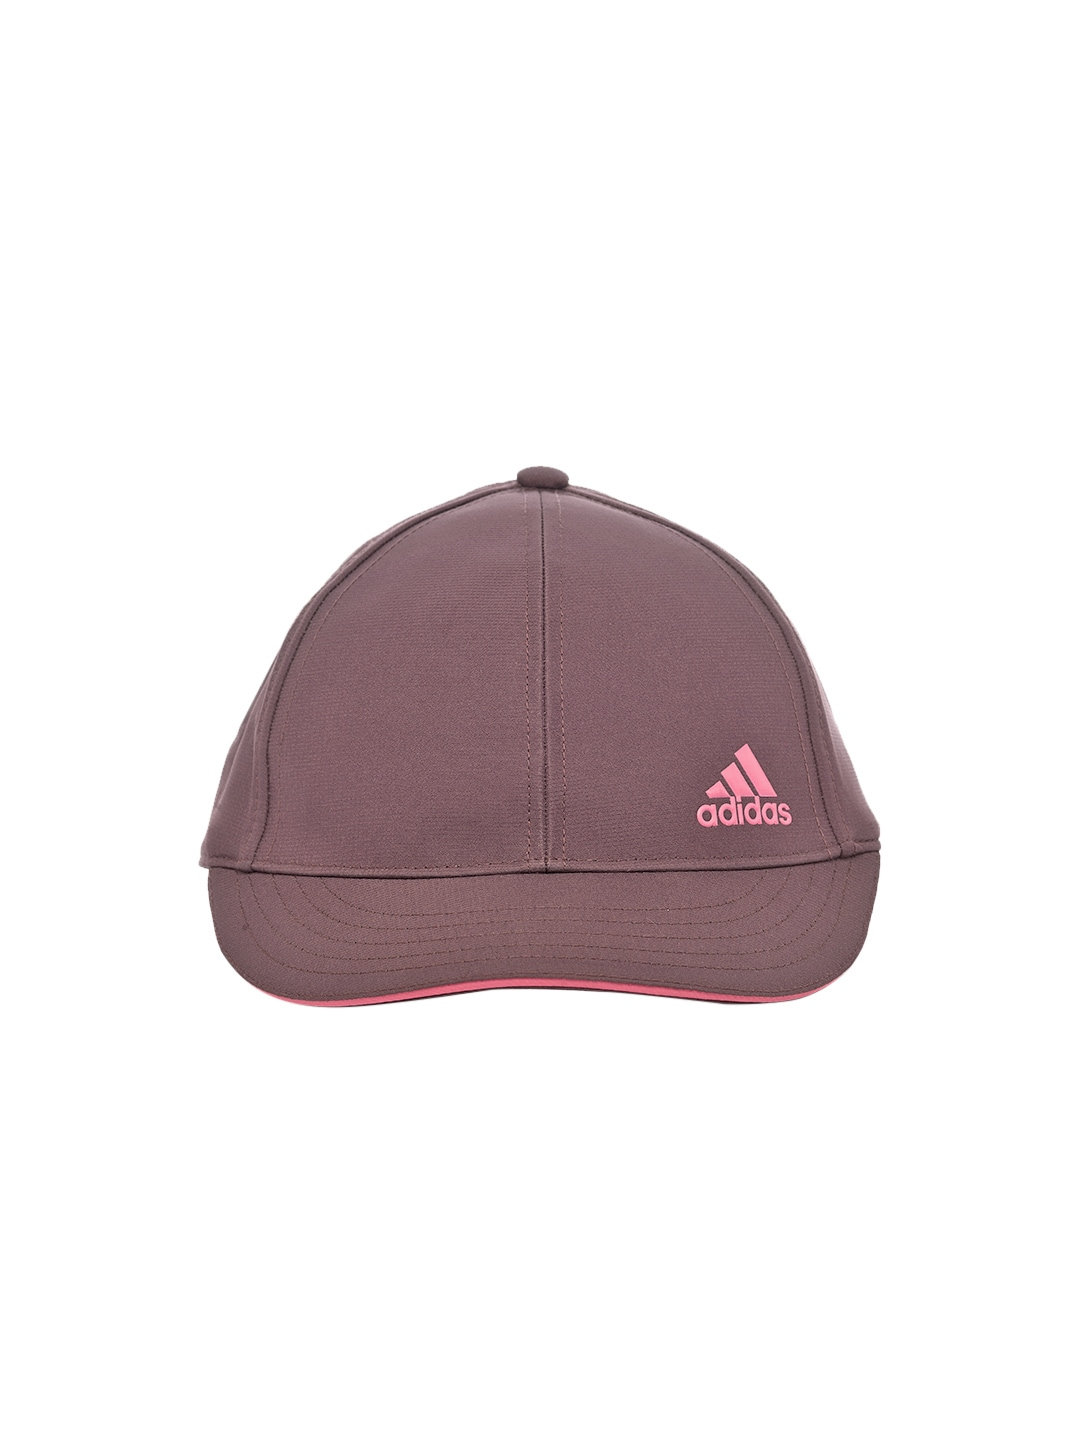 Adidas Caps Climalite - Buy Adidas Caps Climalite online in India 37e5e5df1aa1